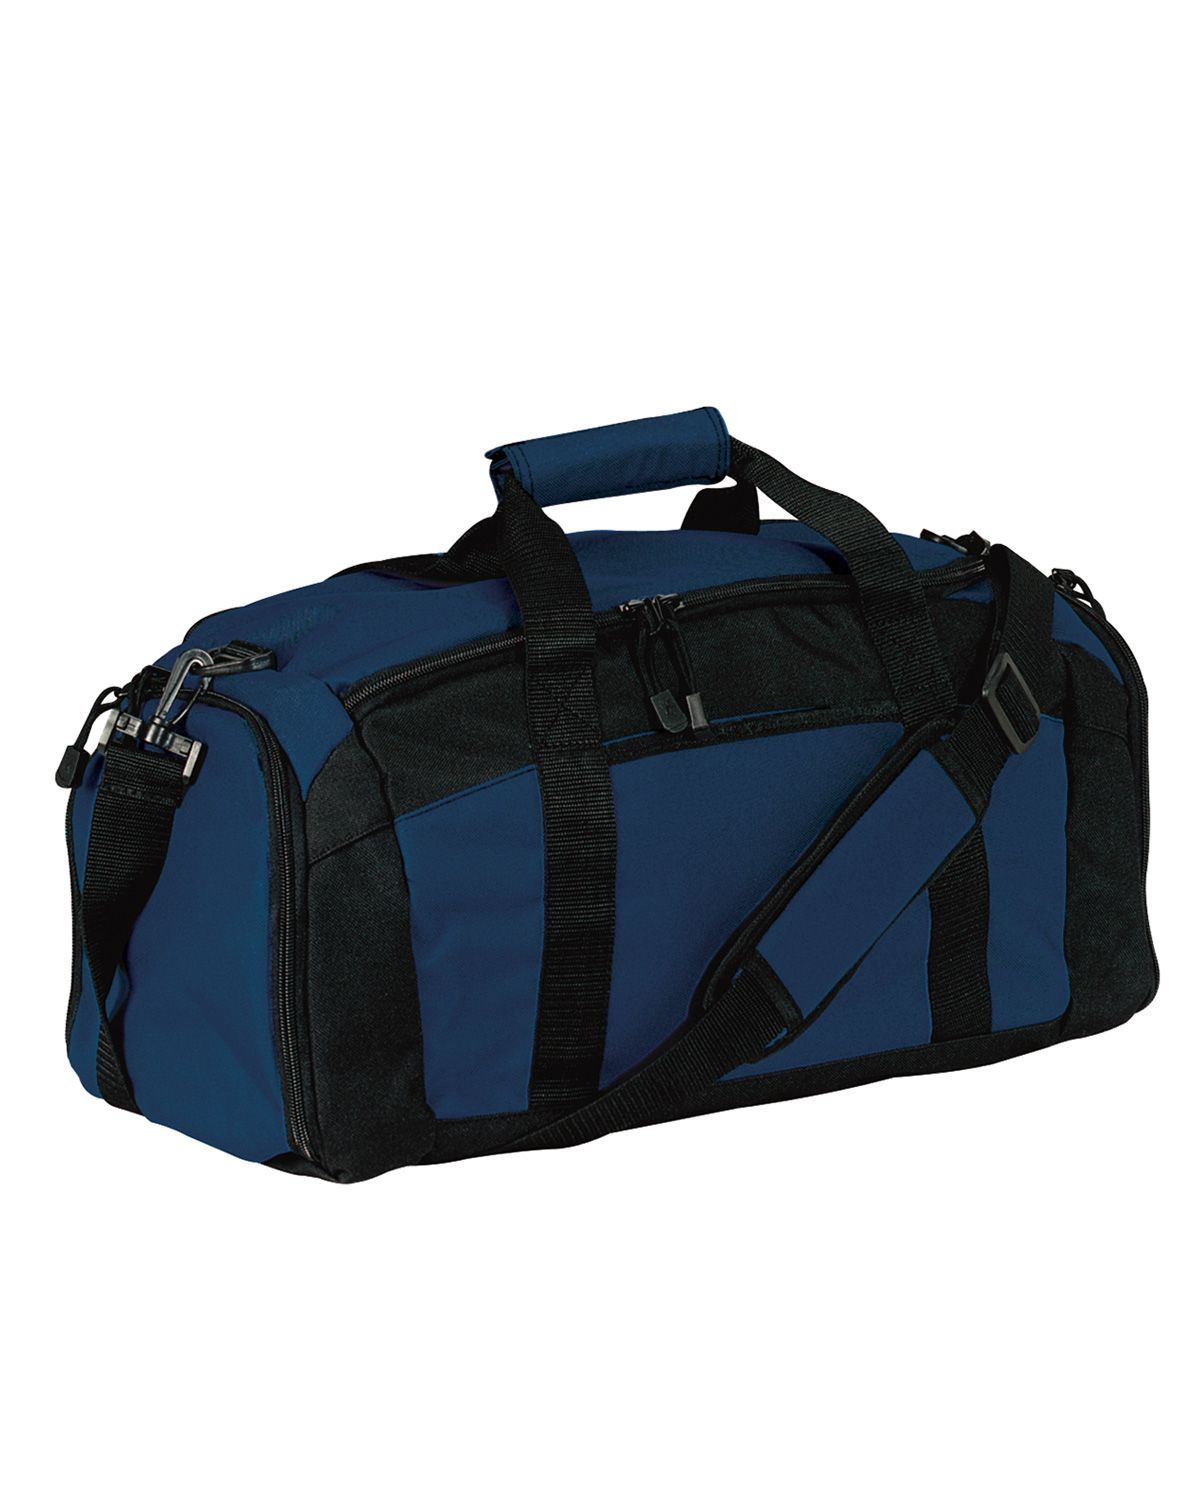 Port Authority BG970 Improved Gym Bag - ApparelnBags.com 8f827f744e7da